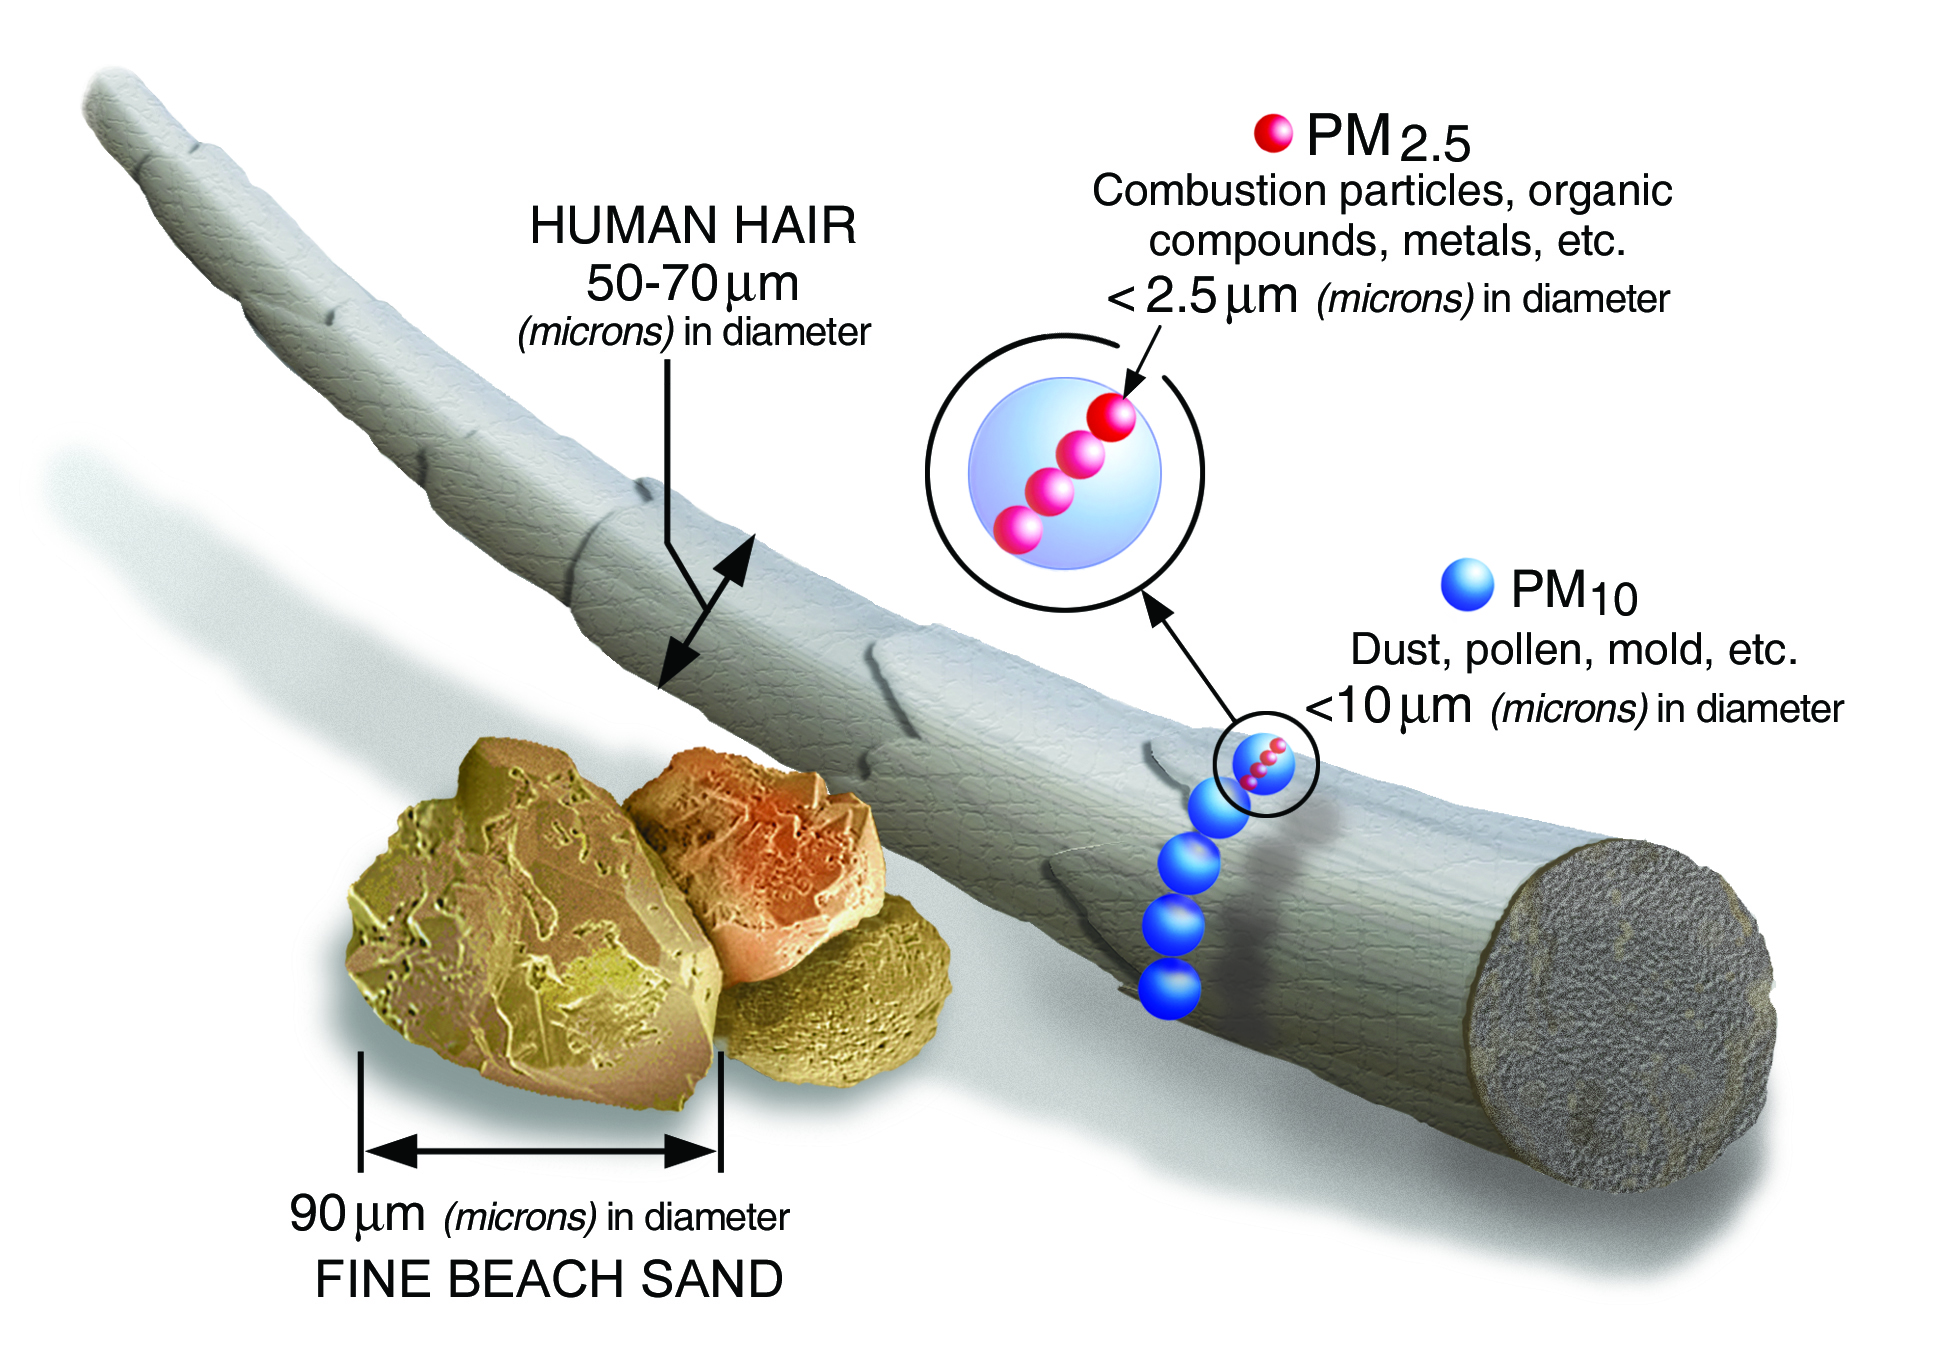 Relative size of particulate matter